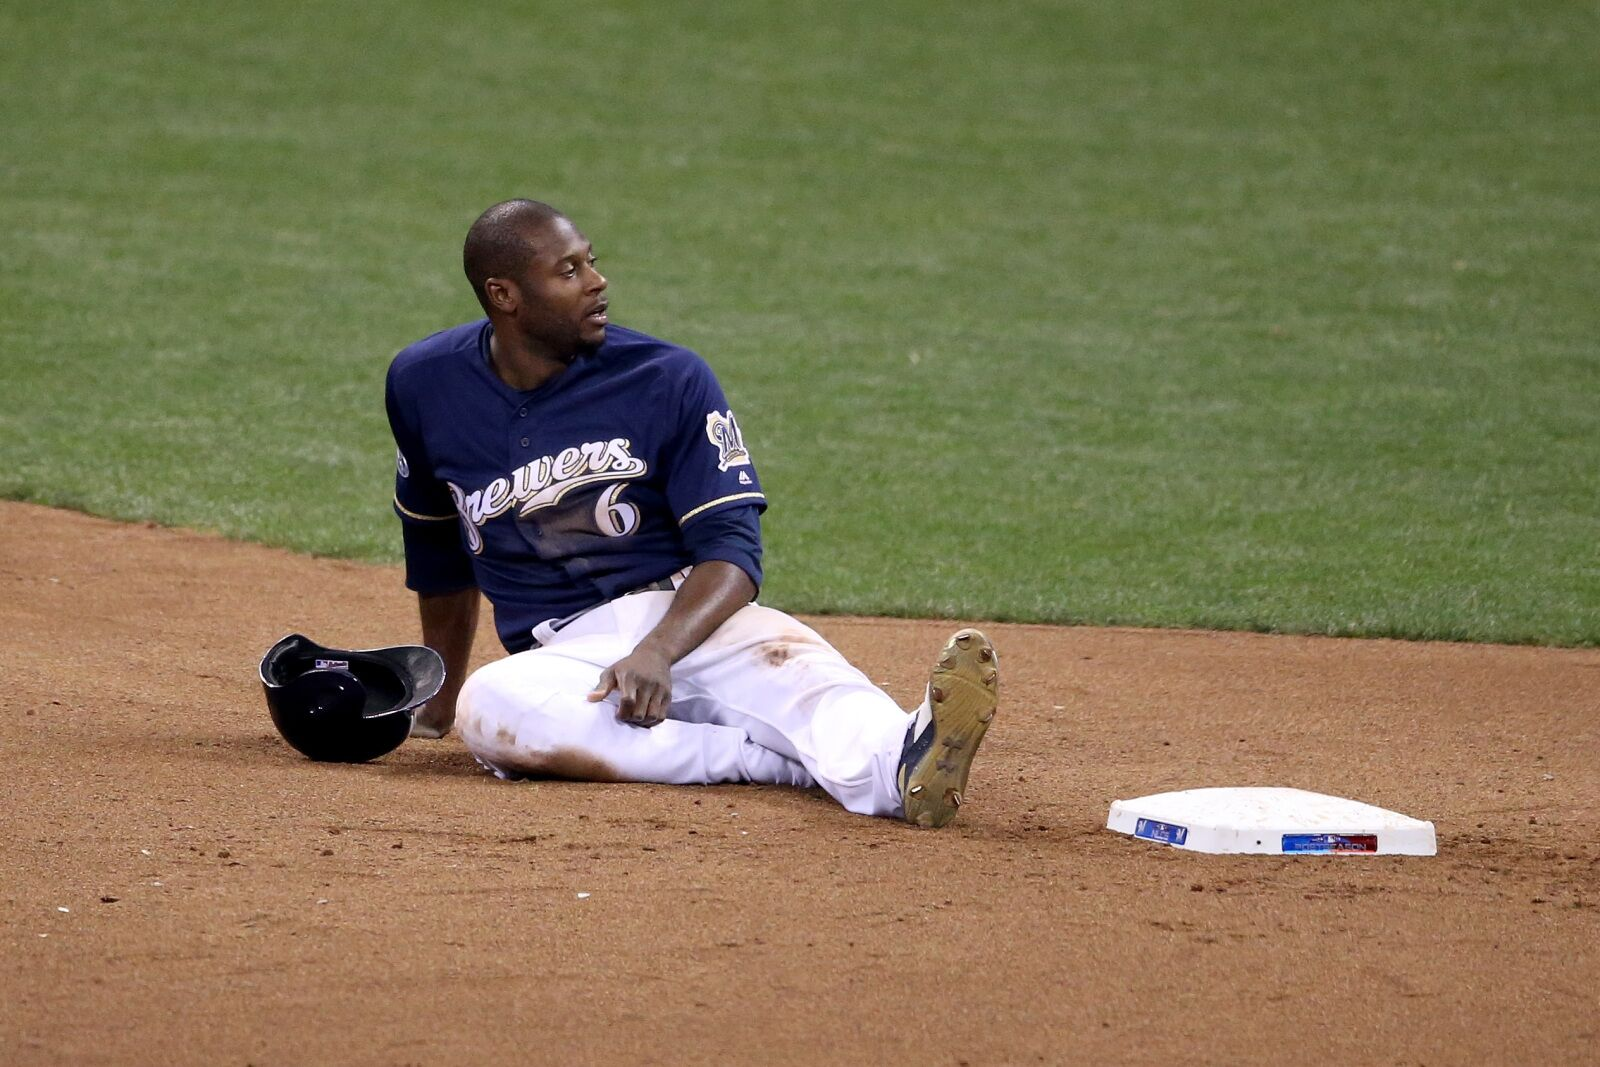 Milwaukee Brewers: Lorenzo Cain's struggles at the plate